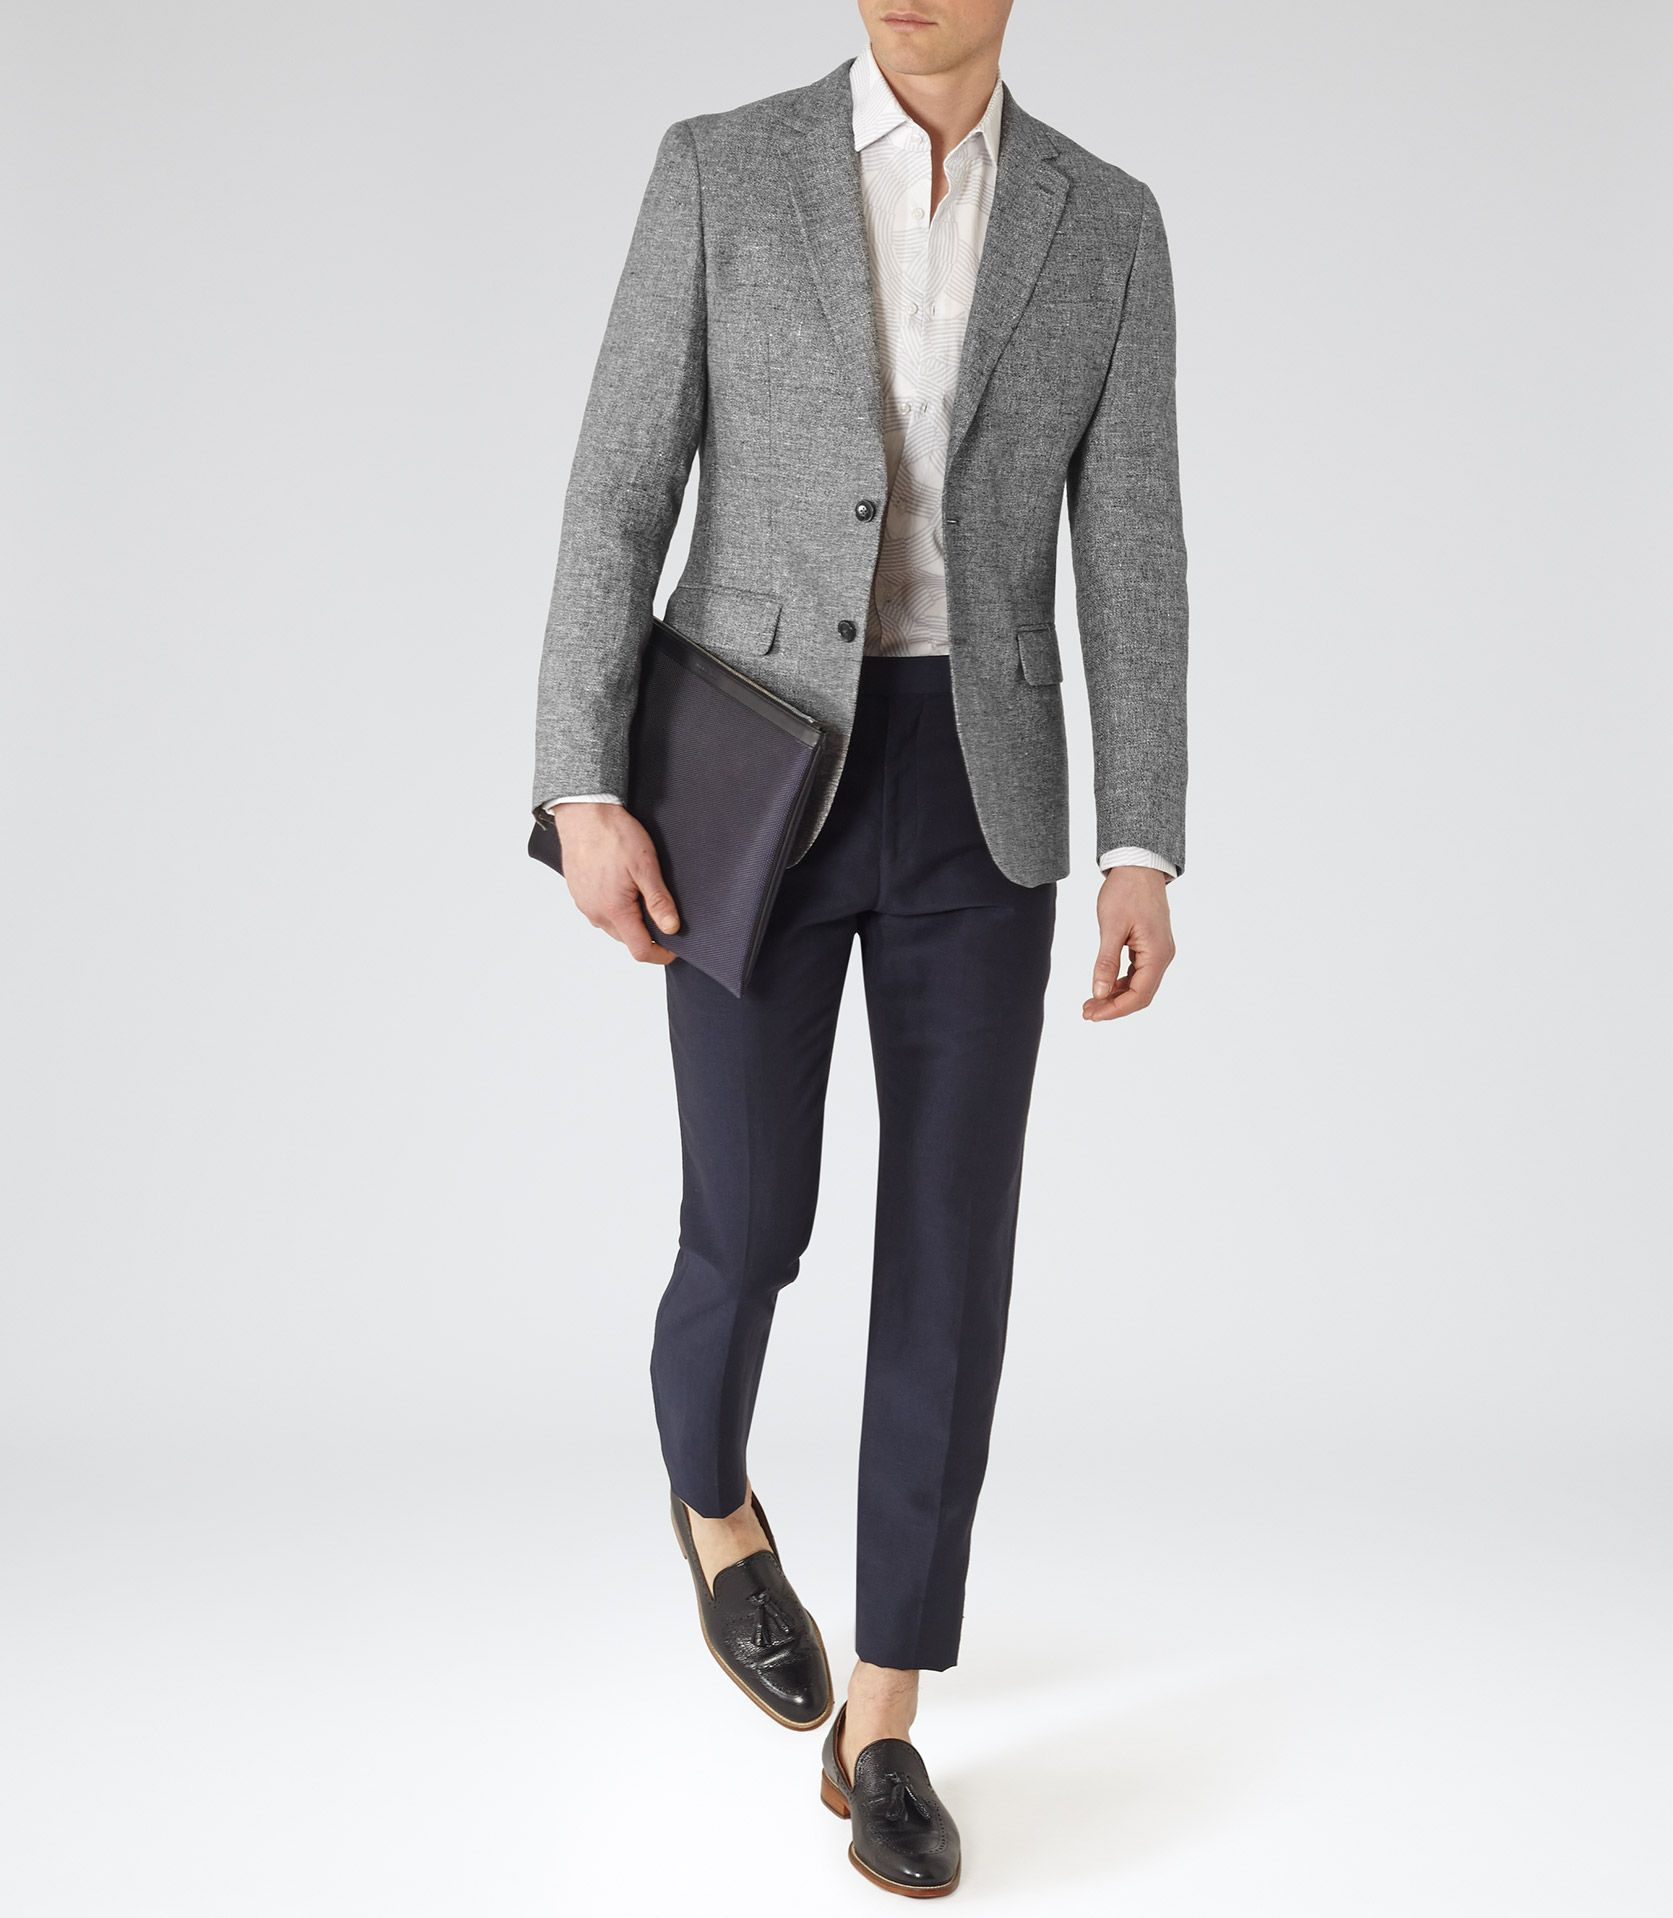 Pastrana | Linen blazer and Sport coat